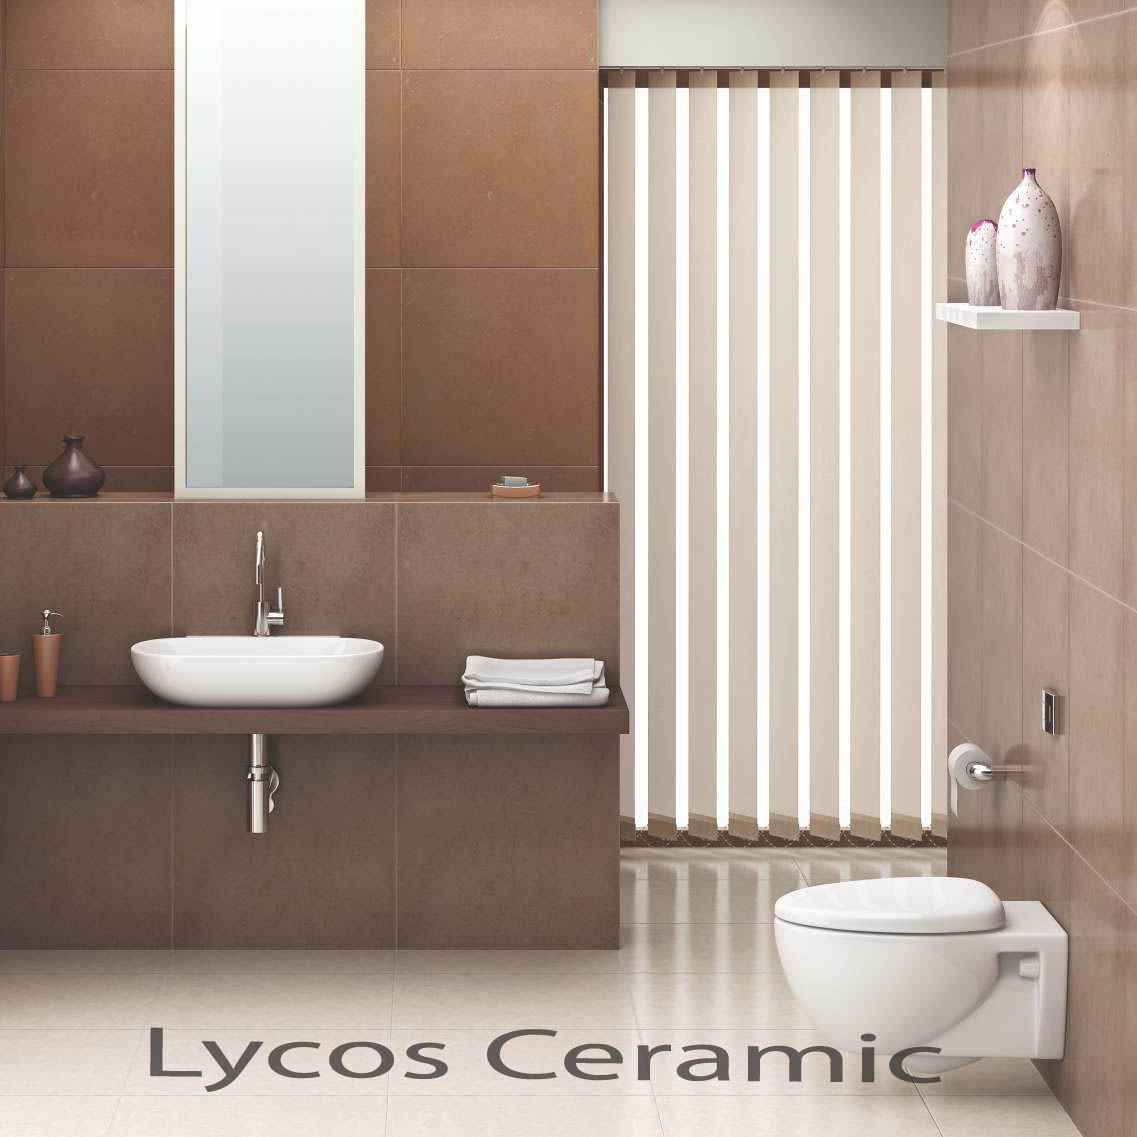 SANITARYWARE We offer a wide range of sanitary ware that are ...